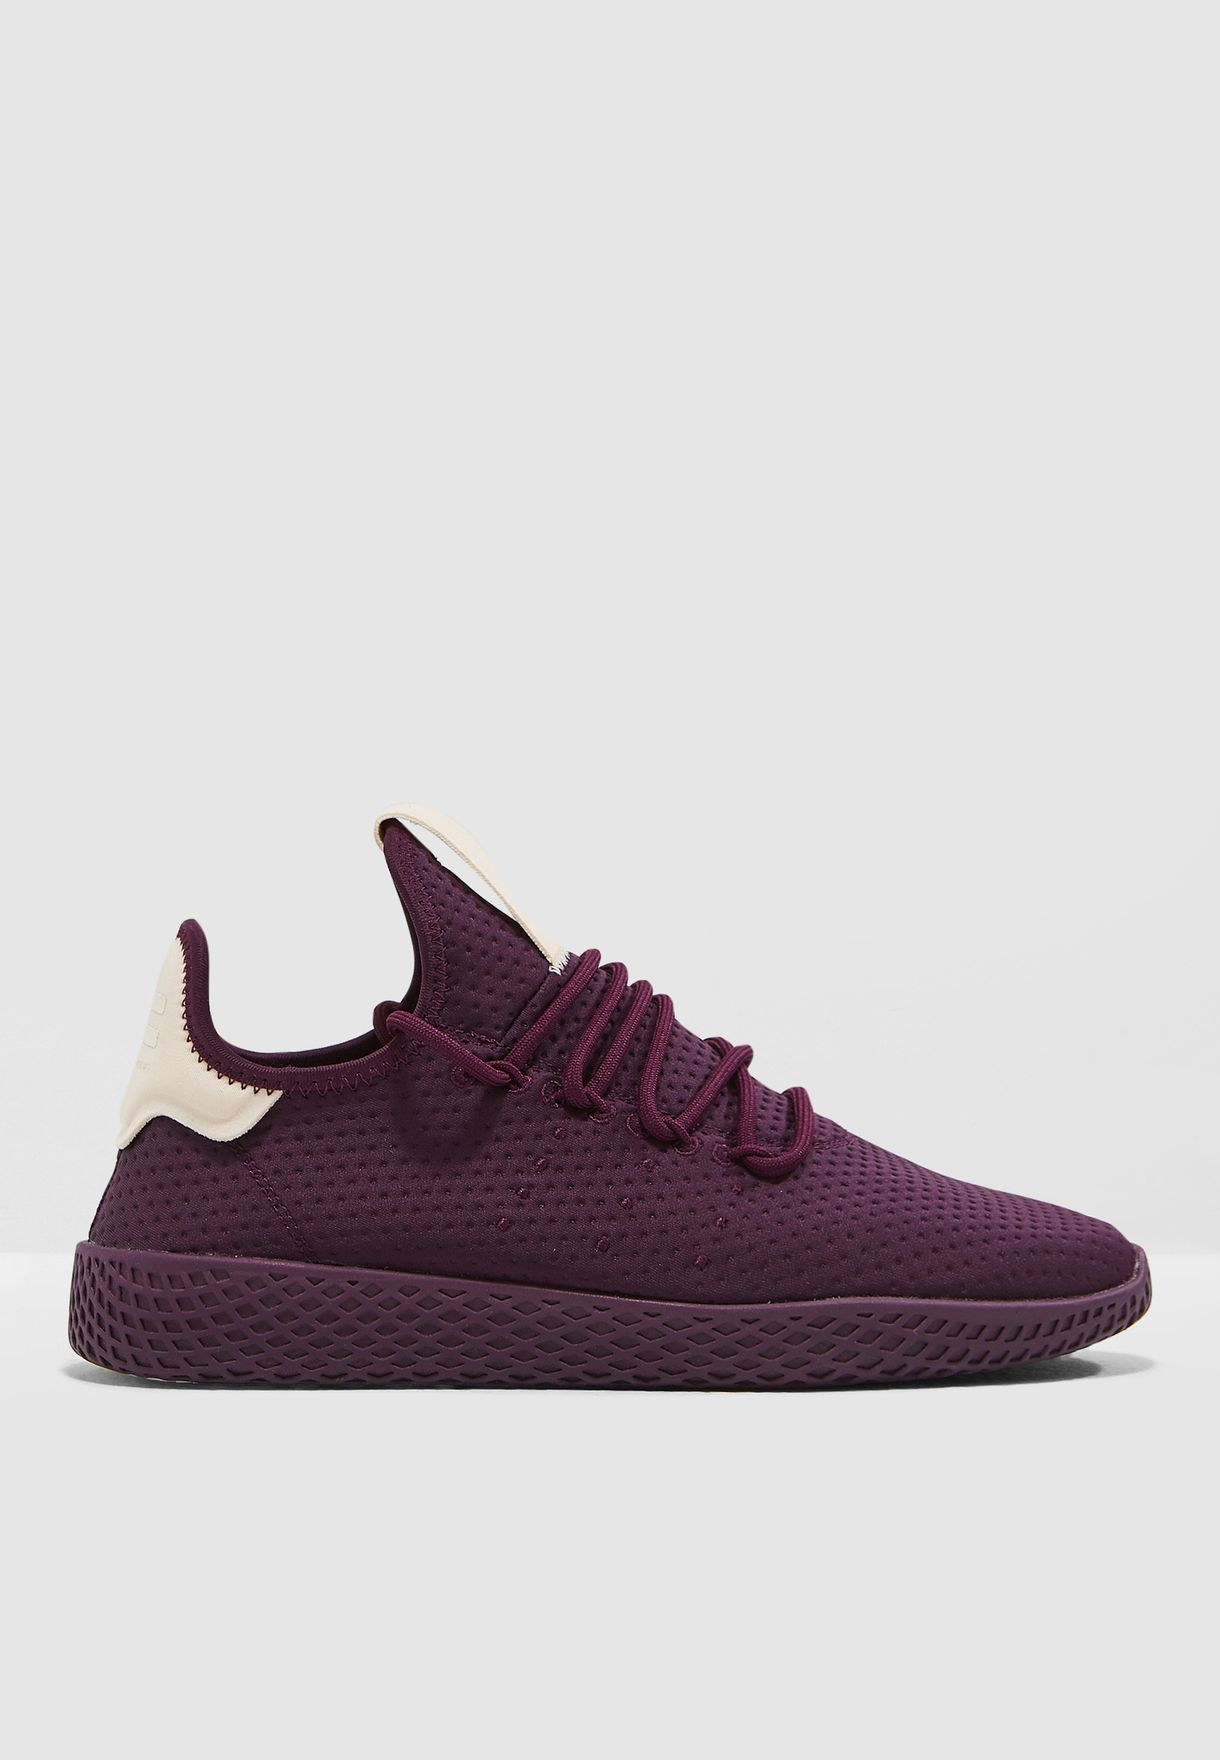 Viaje Hula hoop Gran Barrera de Coral  Buy adidas Originals purple Pharrell Williams Tennis Hu for Women in MENA,  Worldwide | B41892